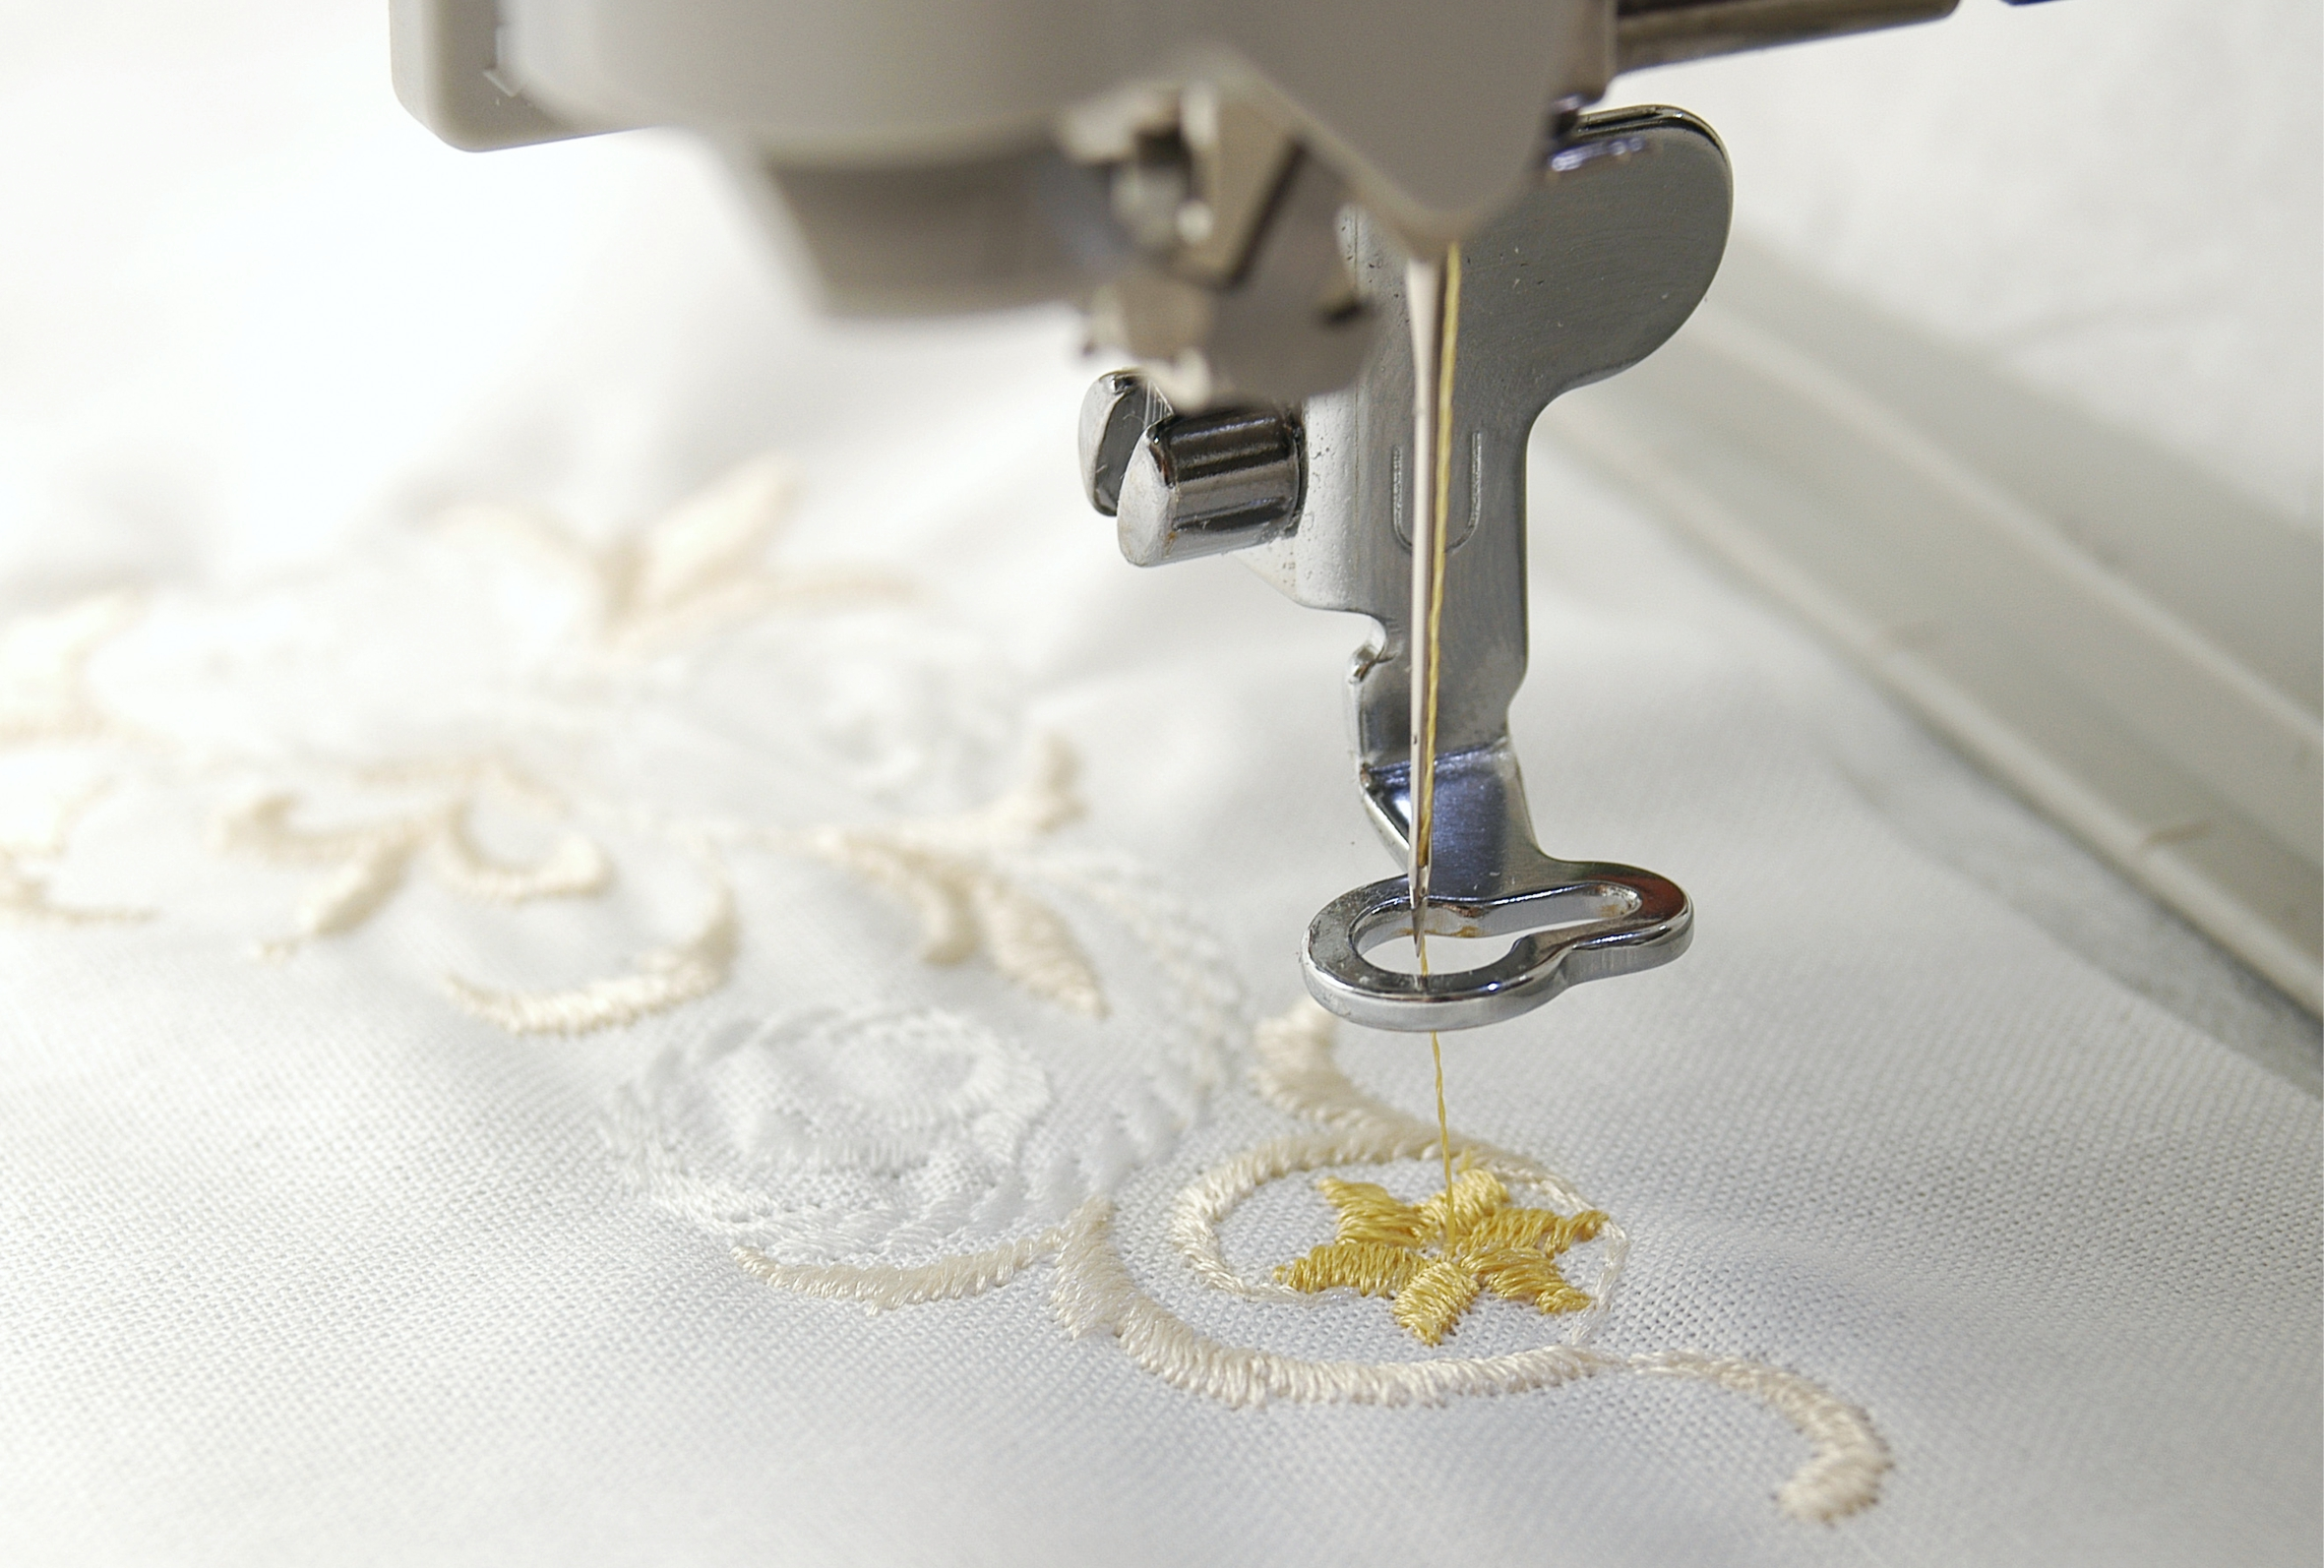 Embroidery showing fine detail